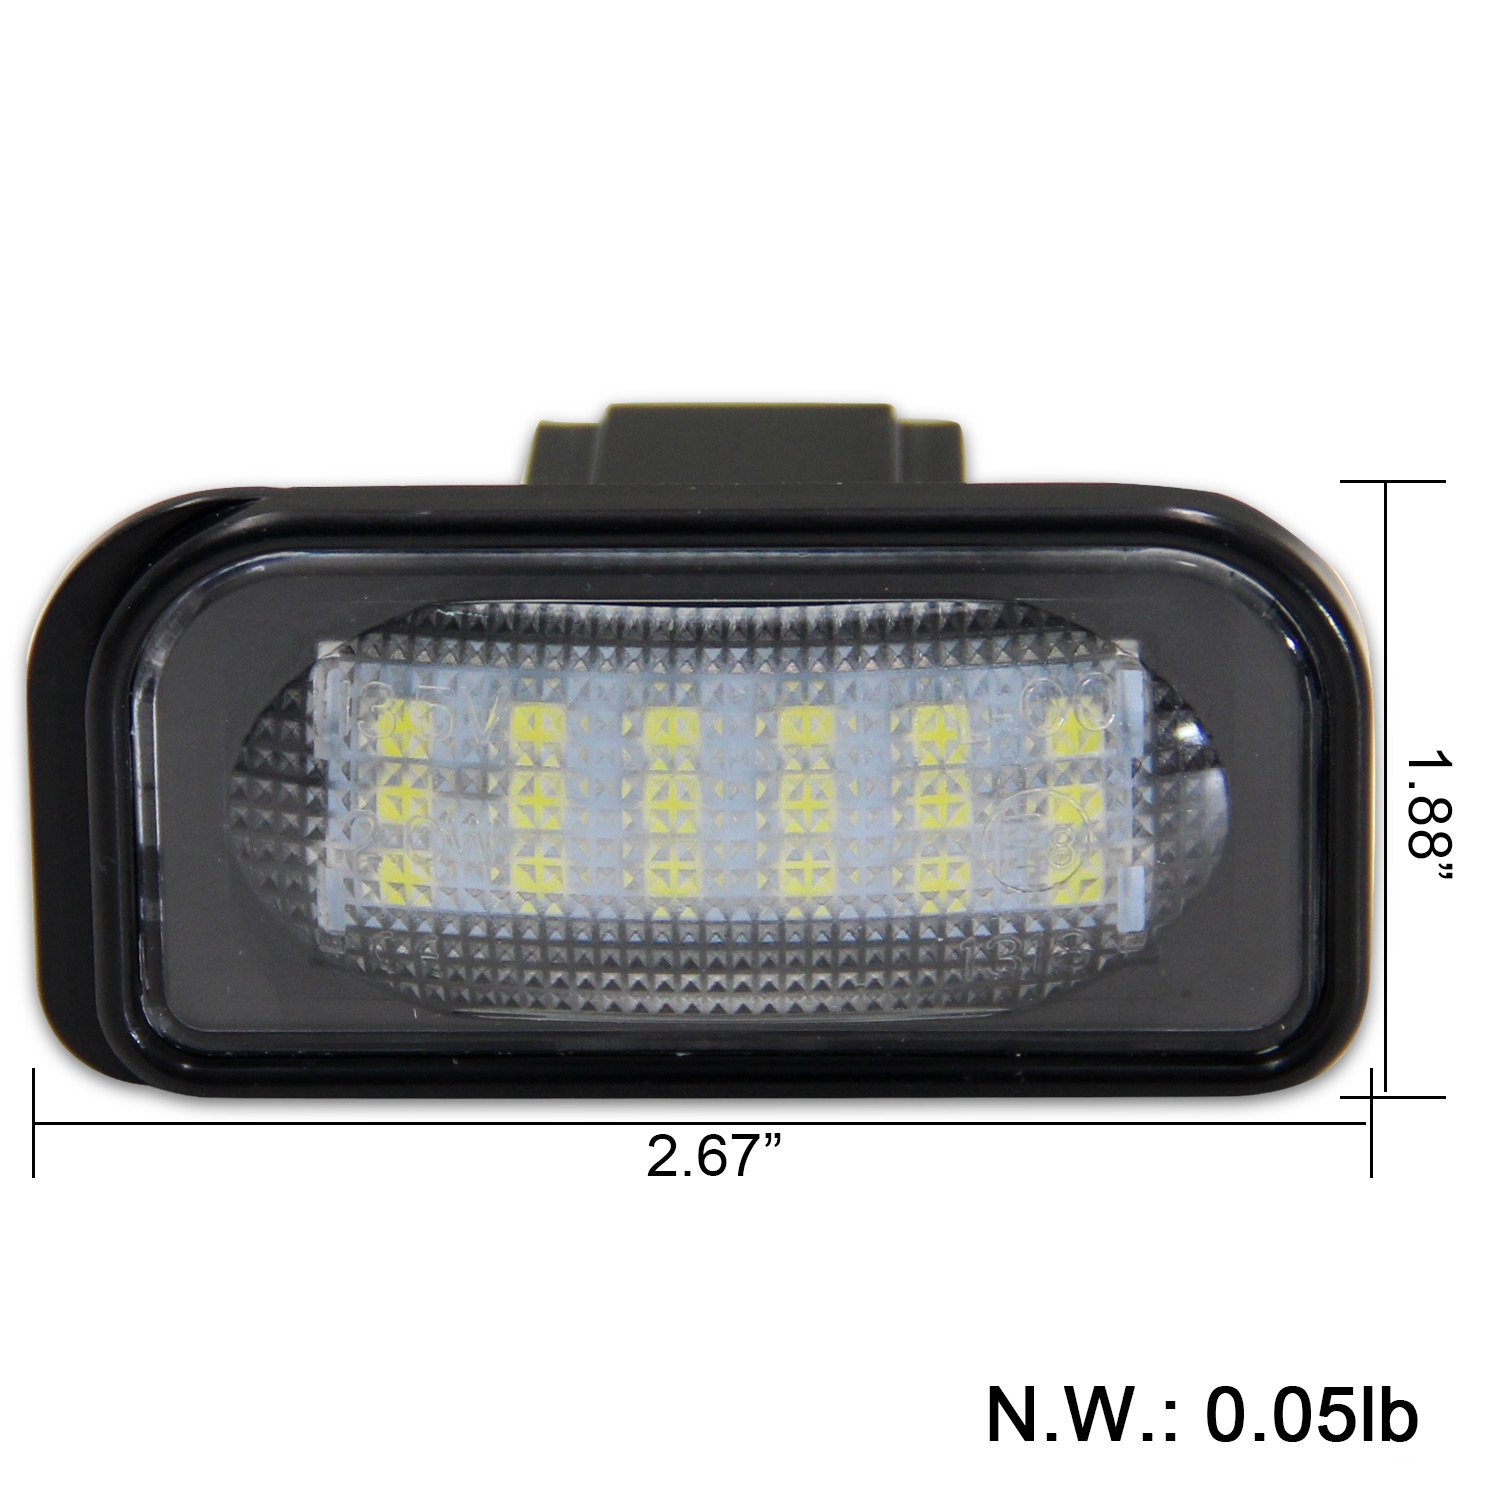 W211 W219 2 Pieces Win Power Error Free 18 SMD LED Number Licence Plate Light Assembly Cool White Lamps Bulb 6000K for W203 5D R171